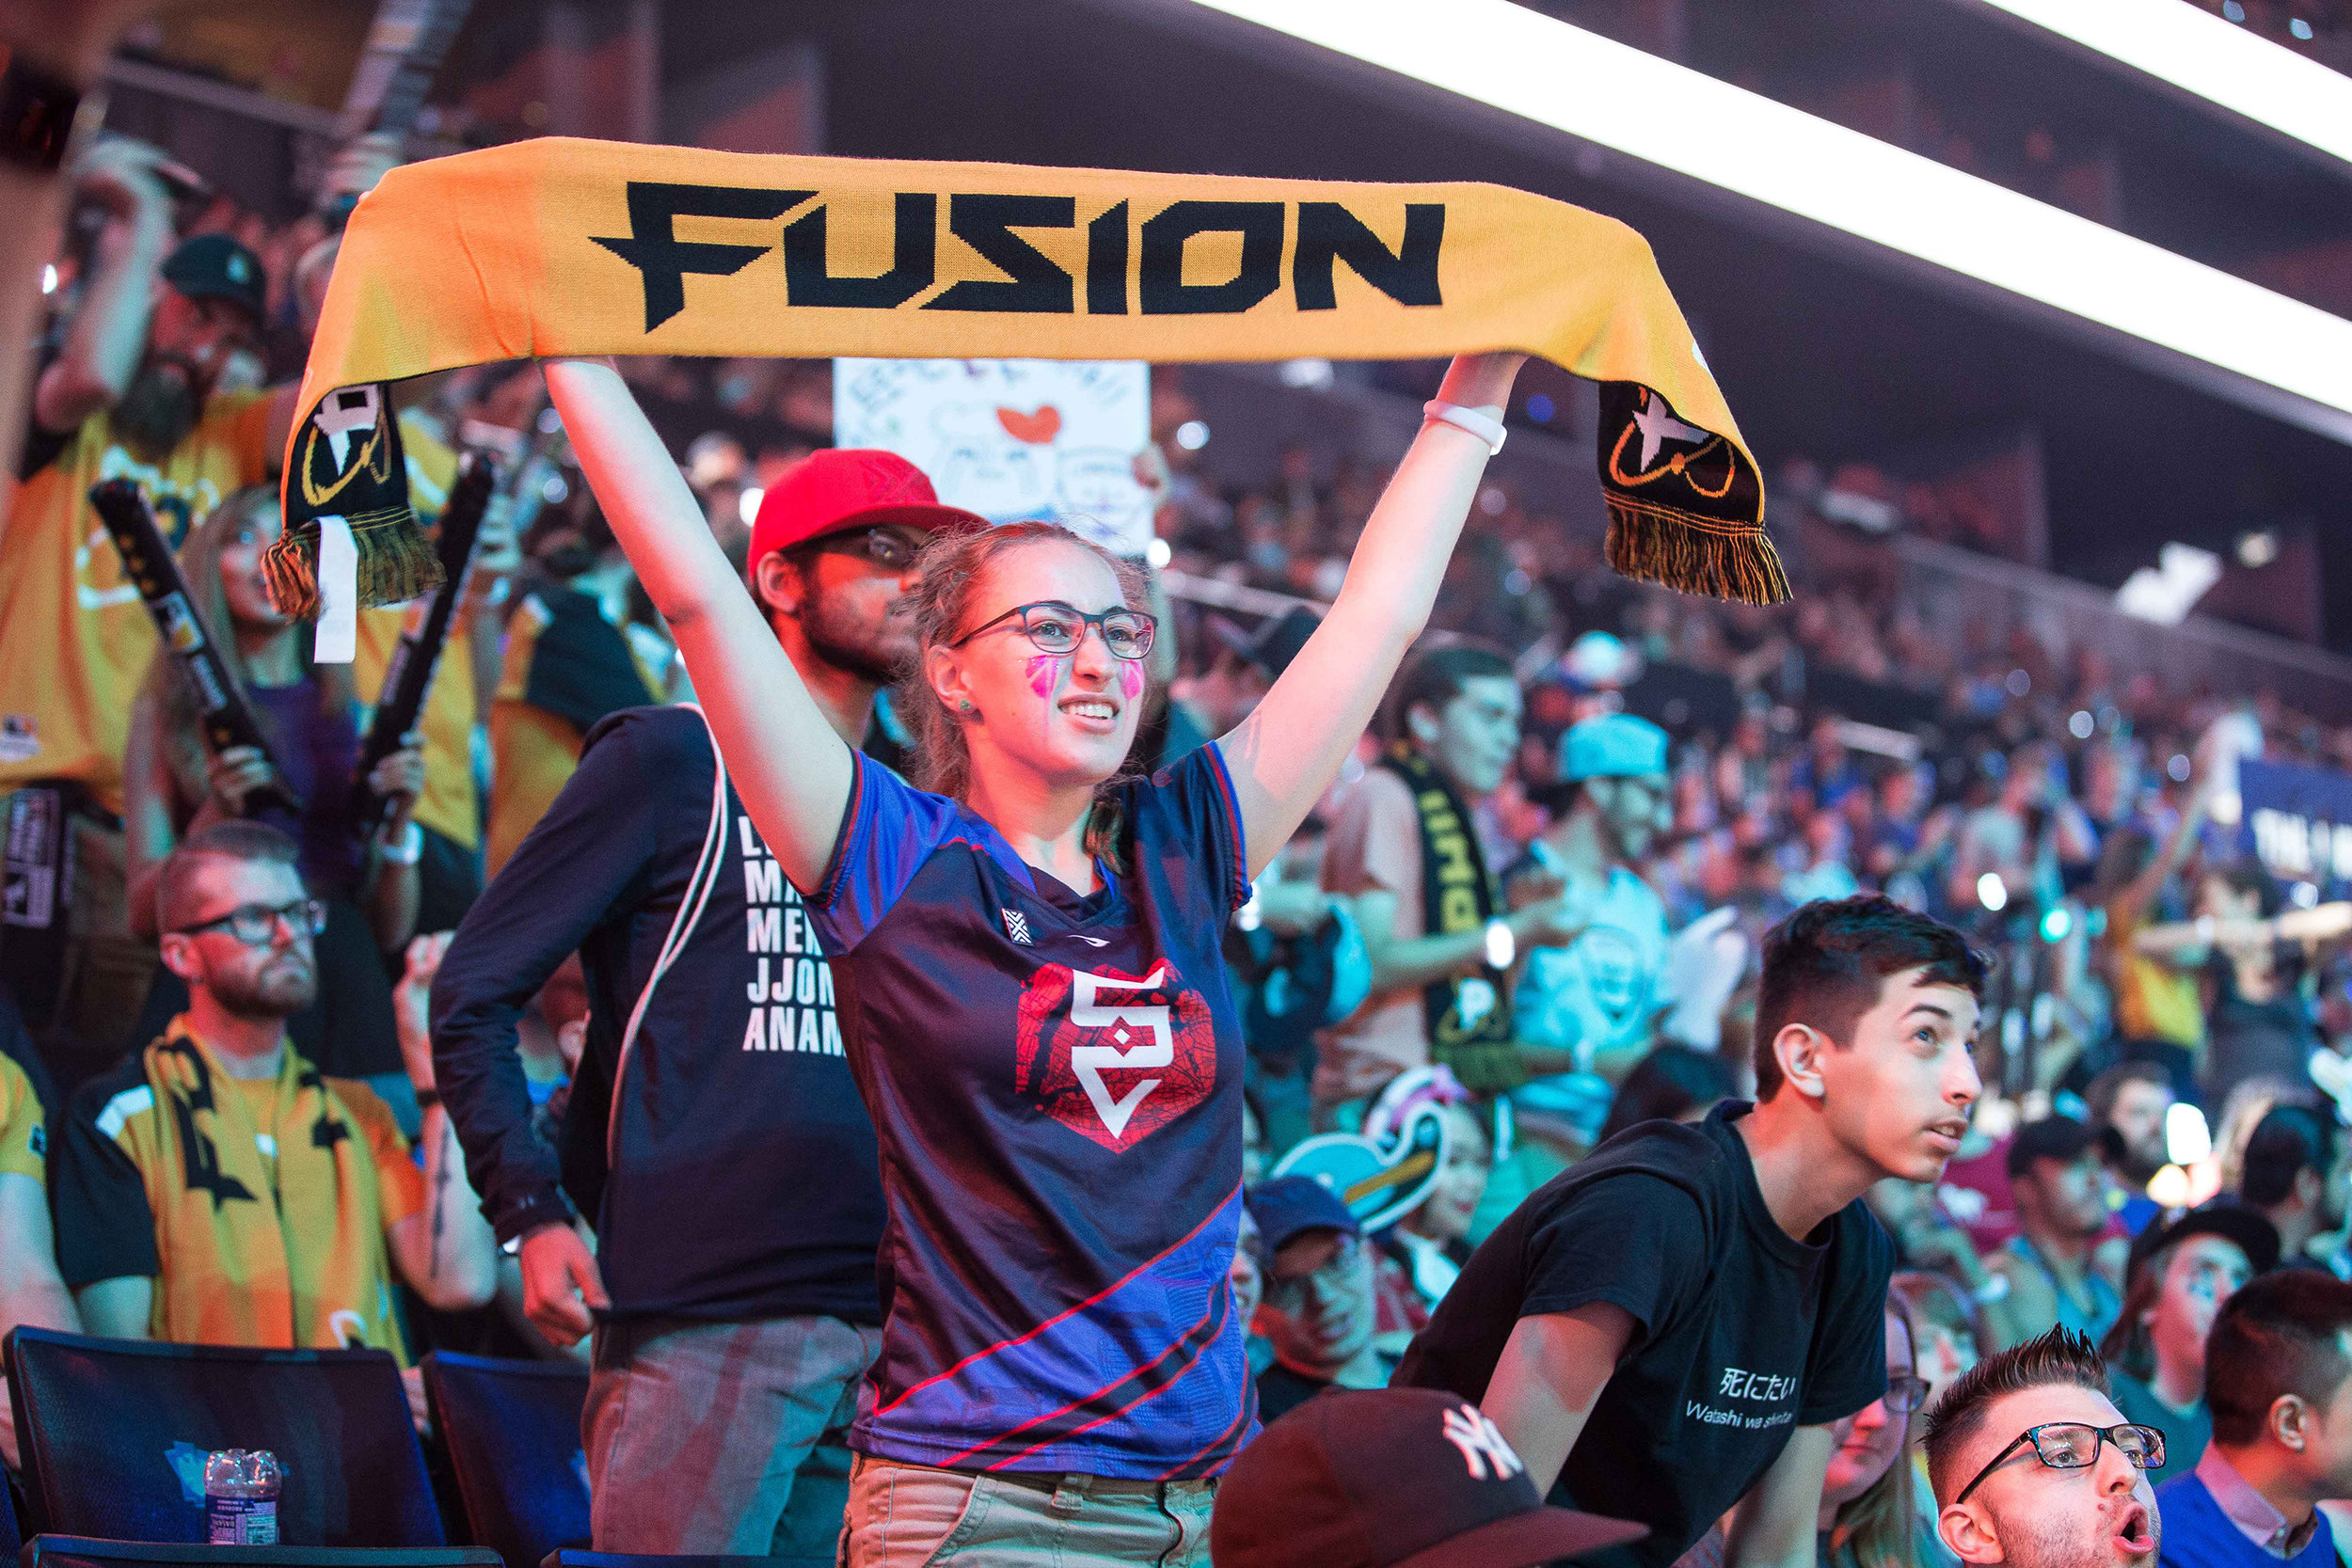 Overwatch League Grand Finals, fan displaying Philadelphia Fusion colors at Barclays Center on July 27, 2018 in Brooklyn, New York.  Photo by Hannah Smith / ESPAT Media